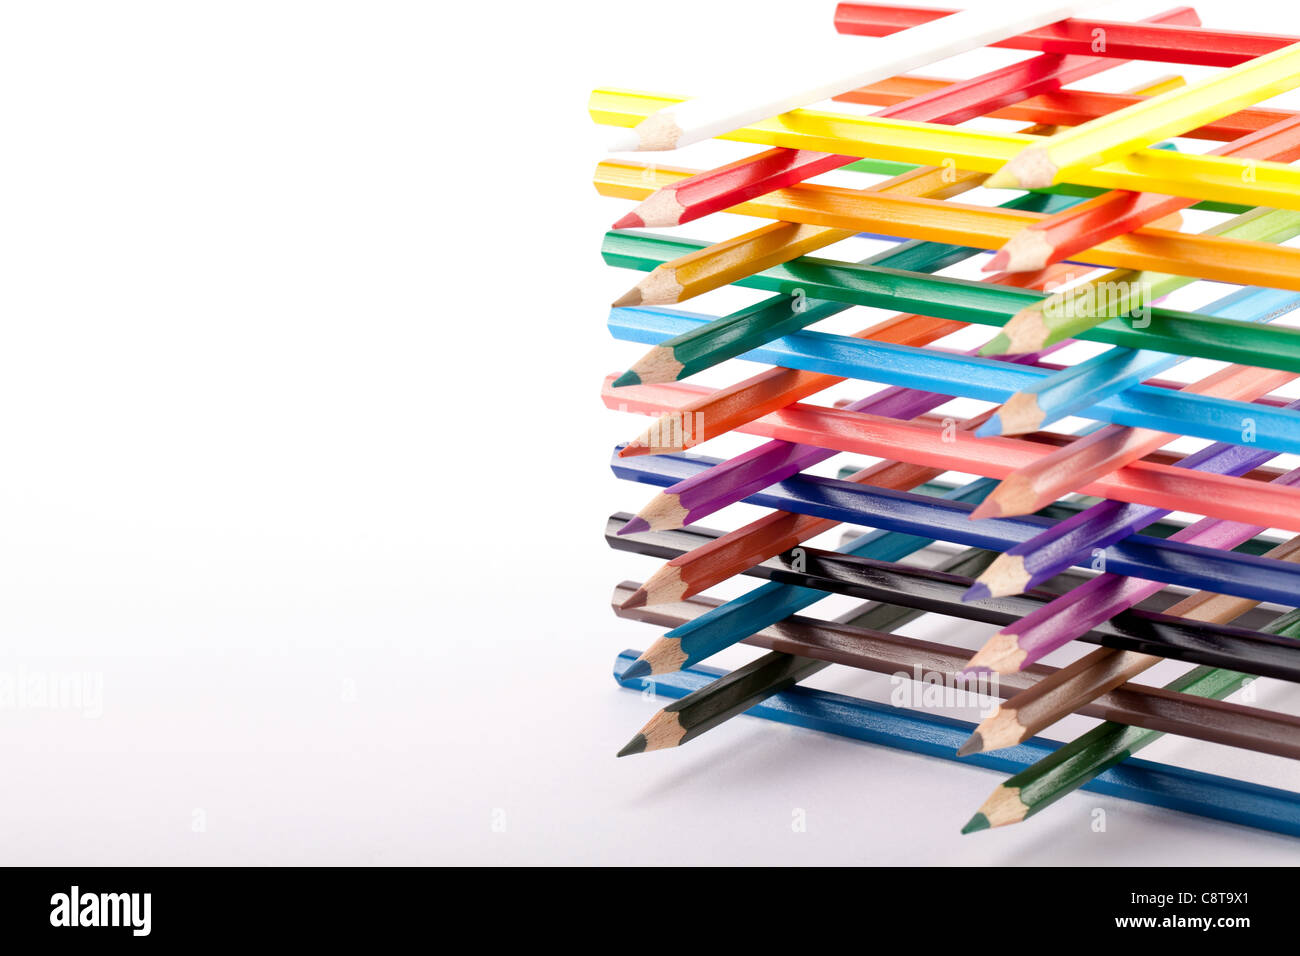 Large Group Of Multi Colored Pencils With Built Structure - Stock Image